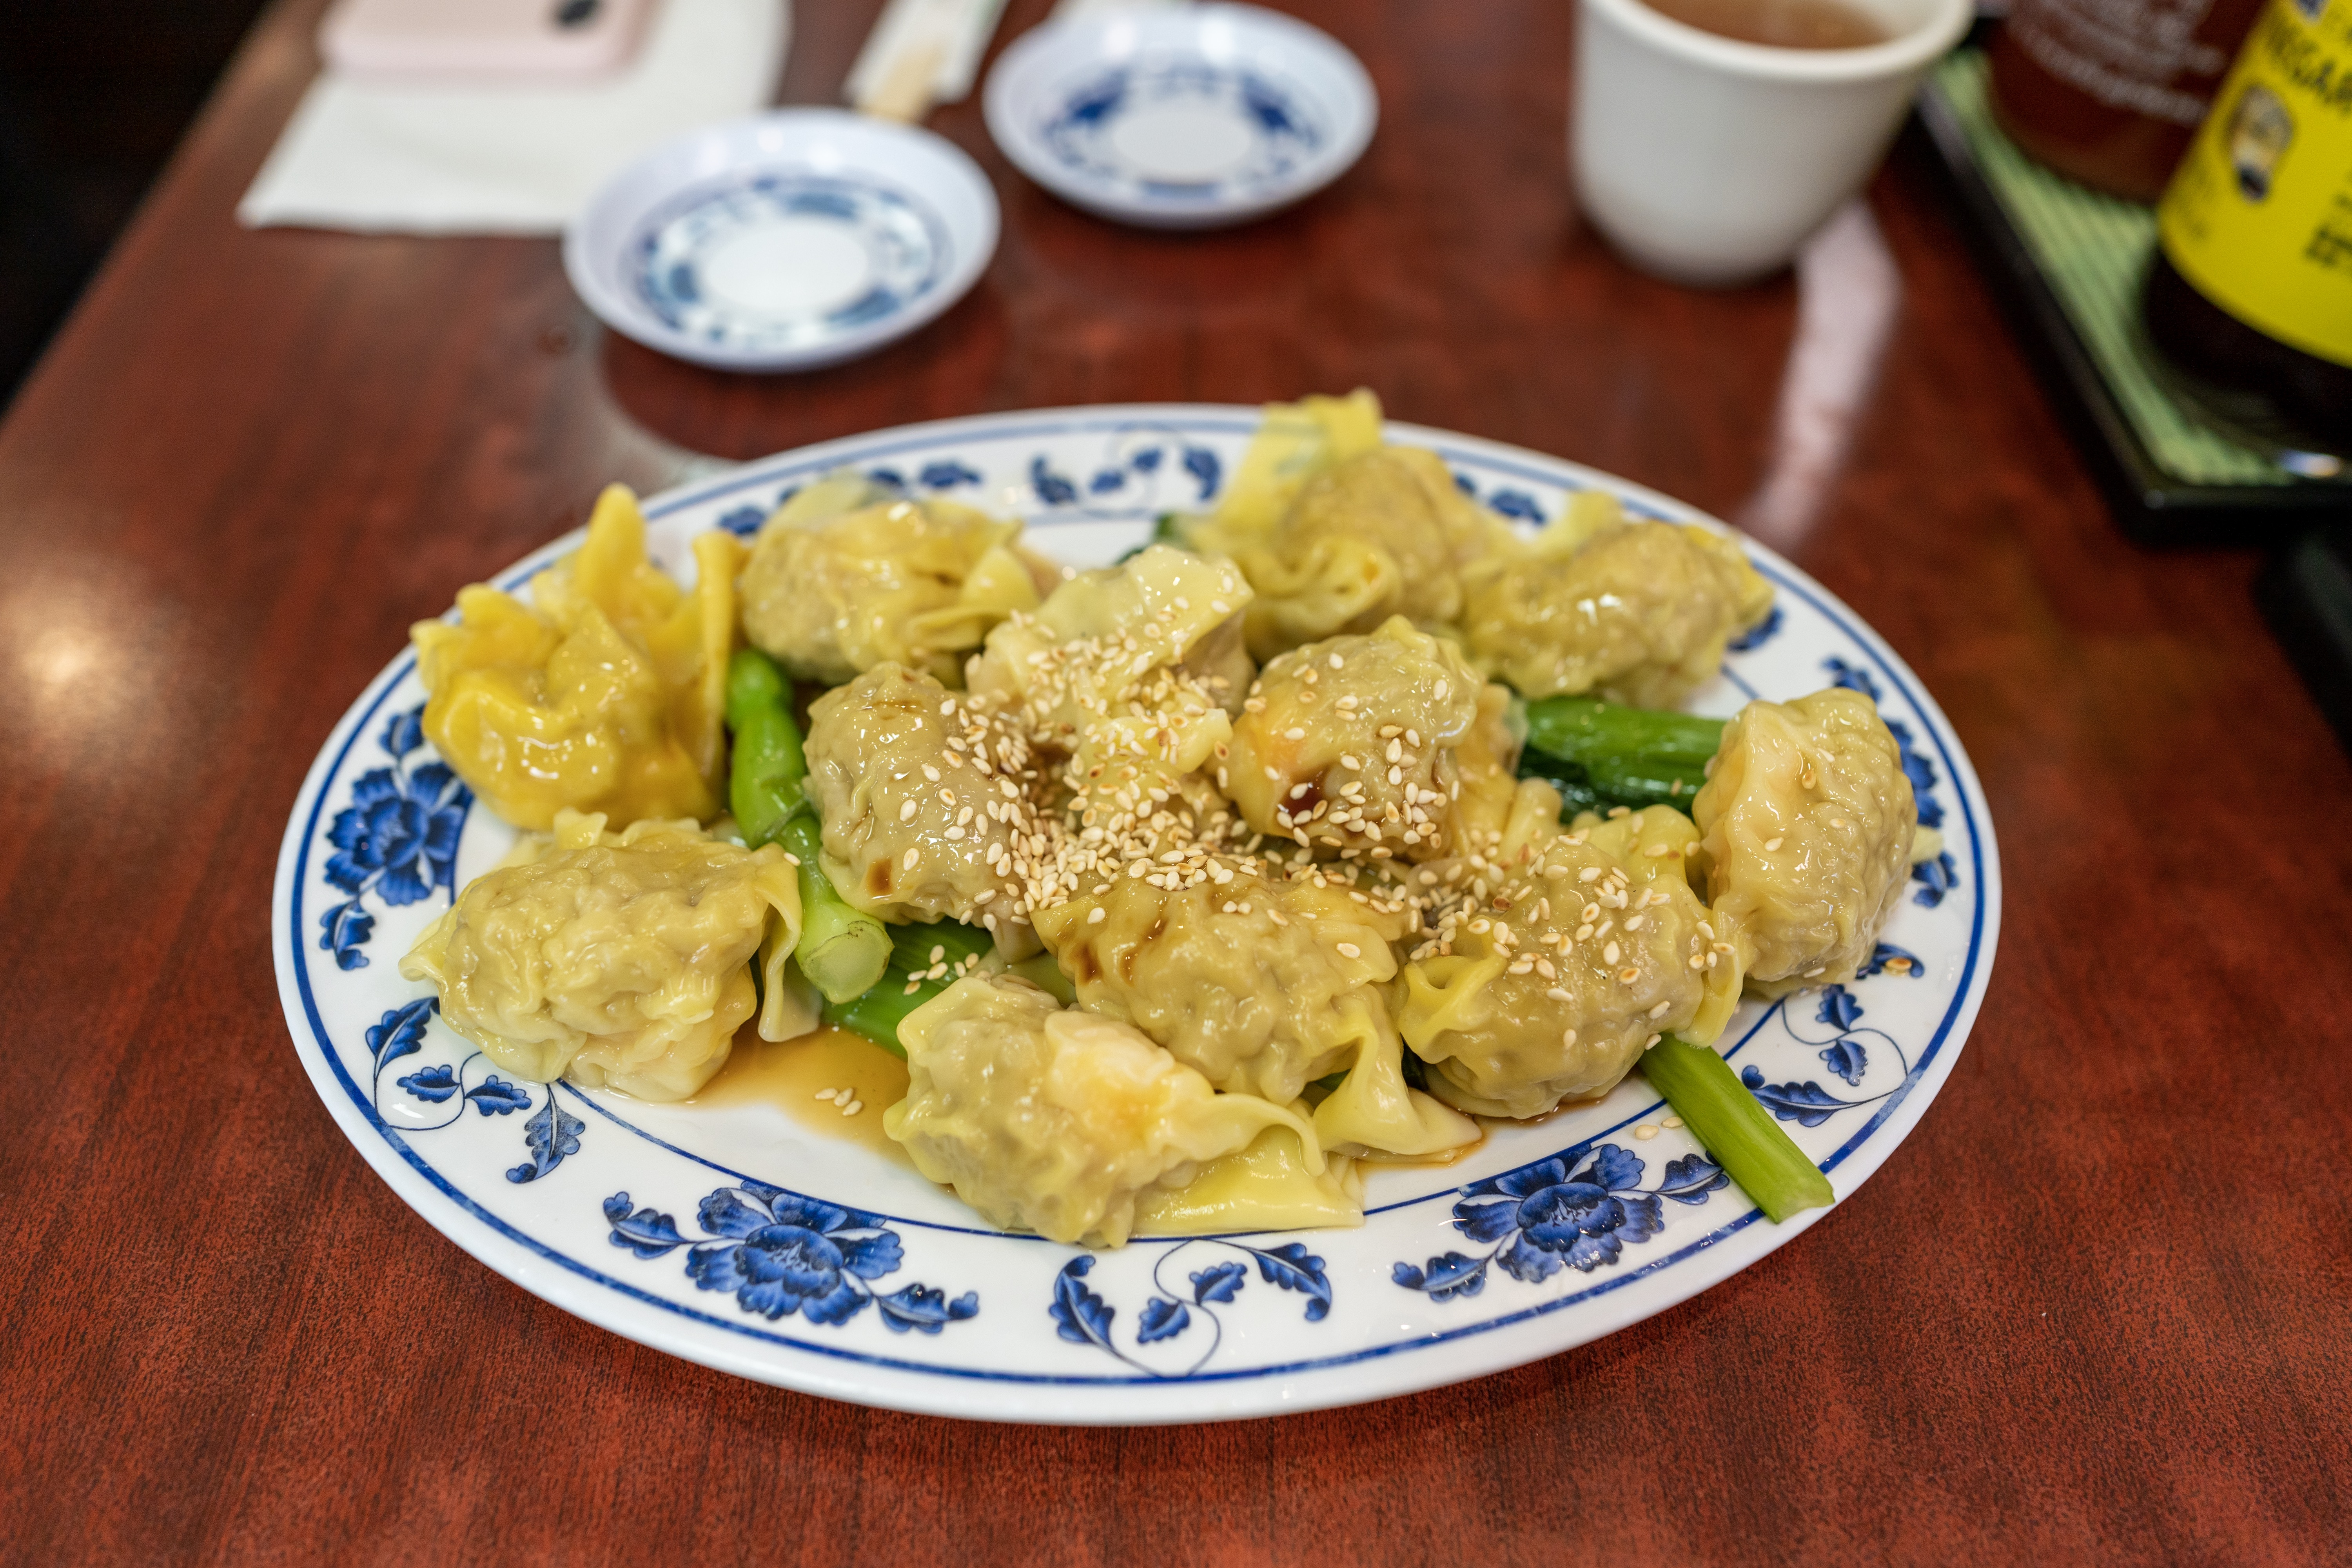 Dry Won Tons at Lam's Kitchen